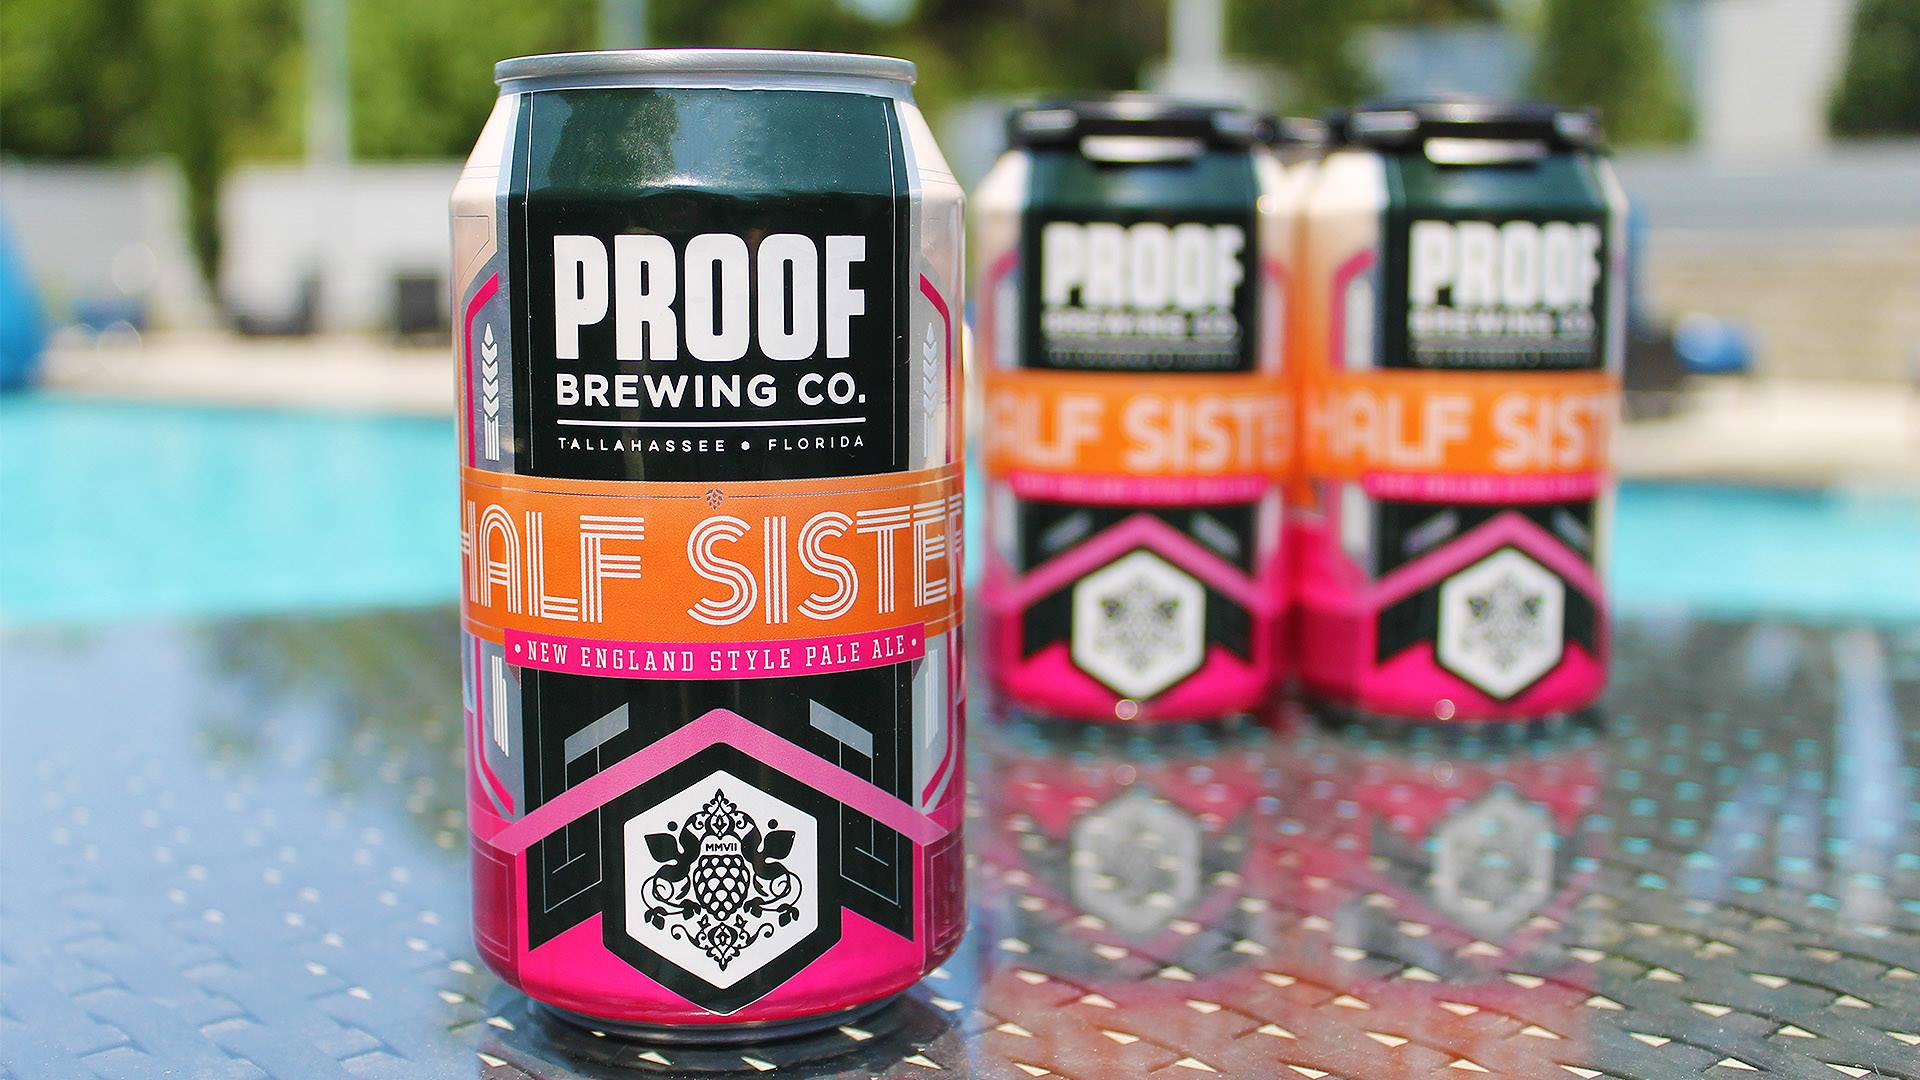 Half Sister Cans